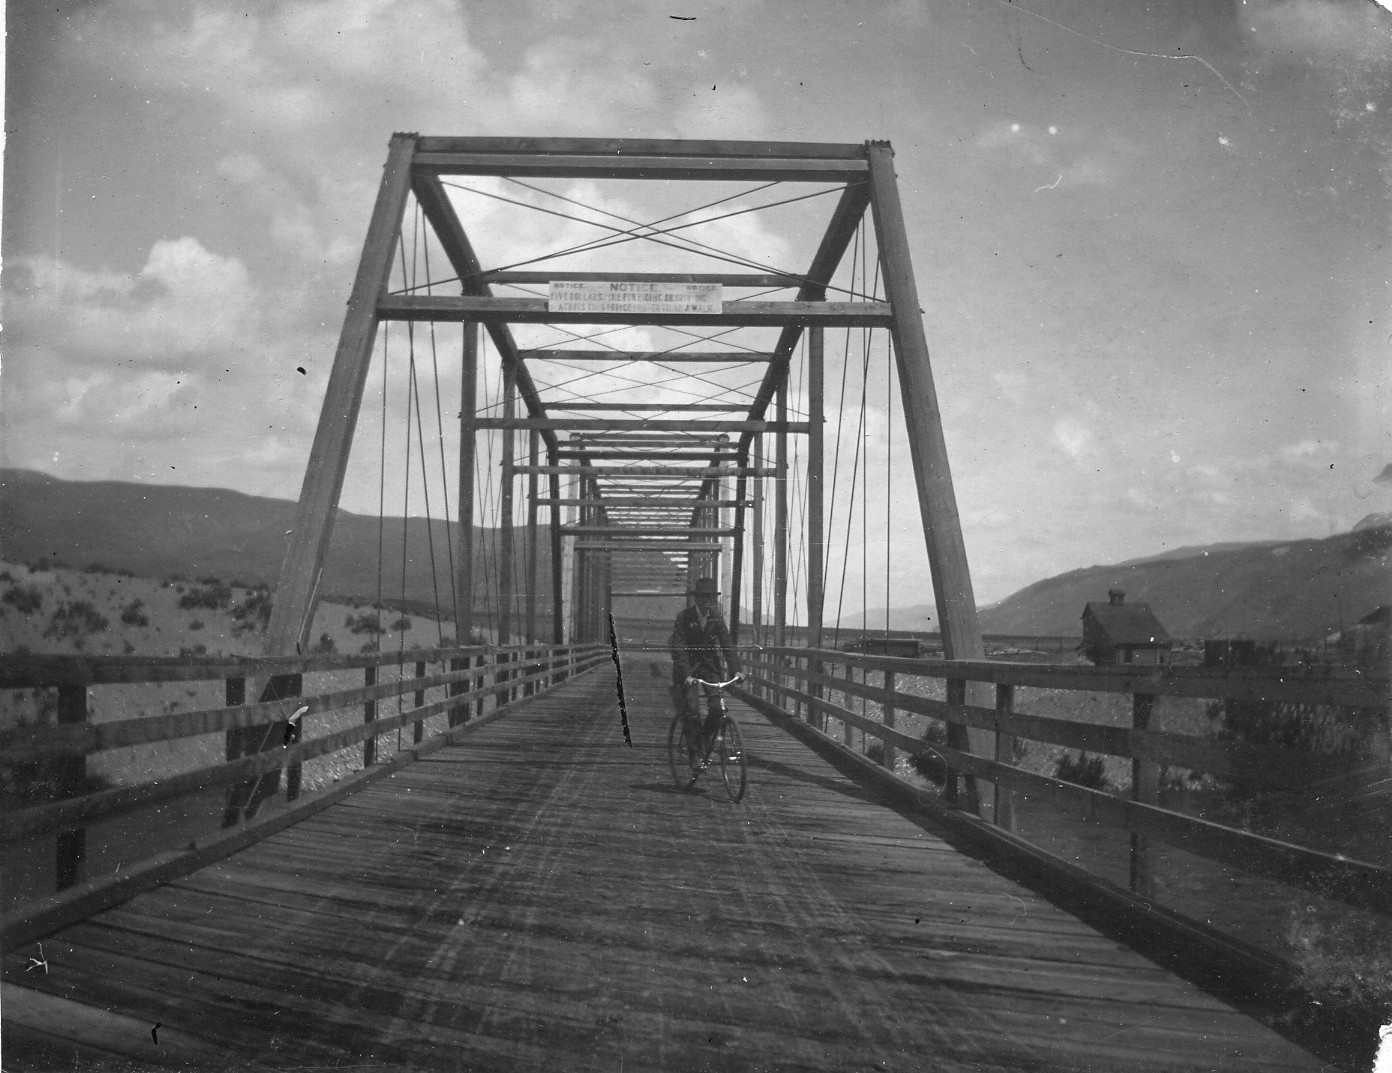 Second bridge made of wood and steel over the Wenatchee River near its confluence with the Columbia. Built by I. J. Bailey who built many bridges in his career.